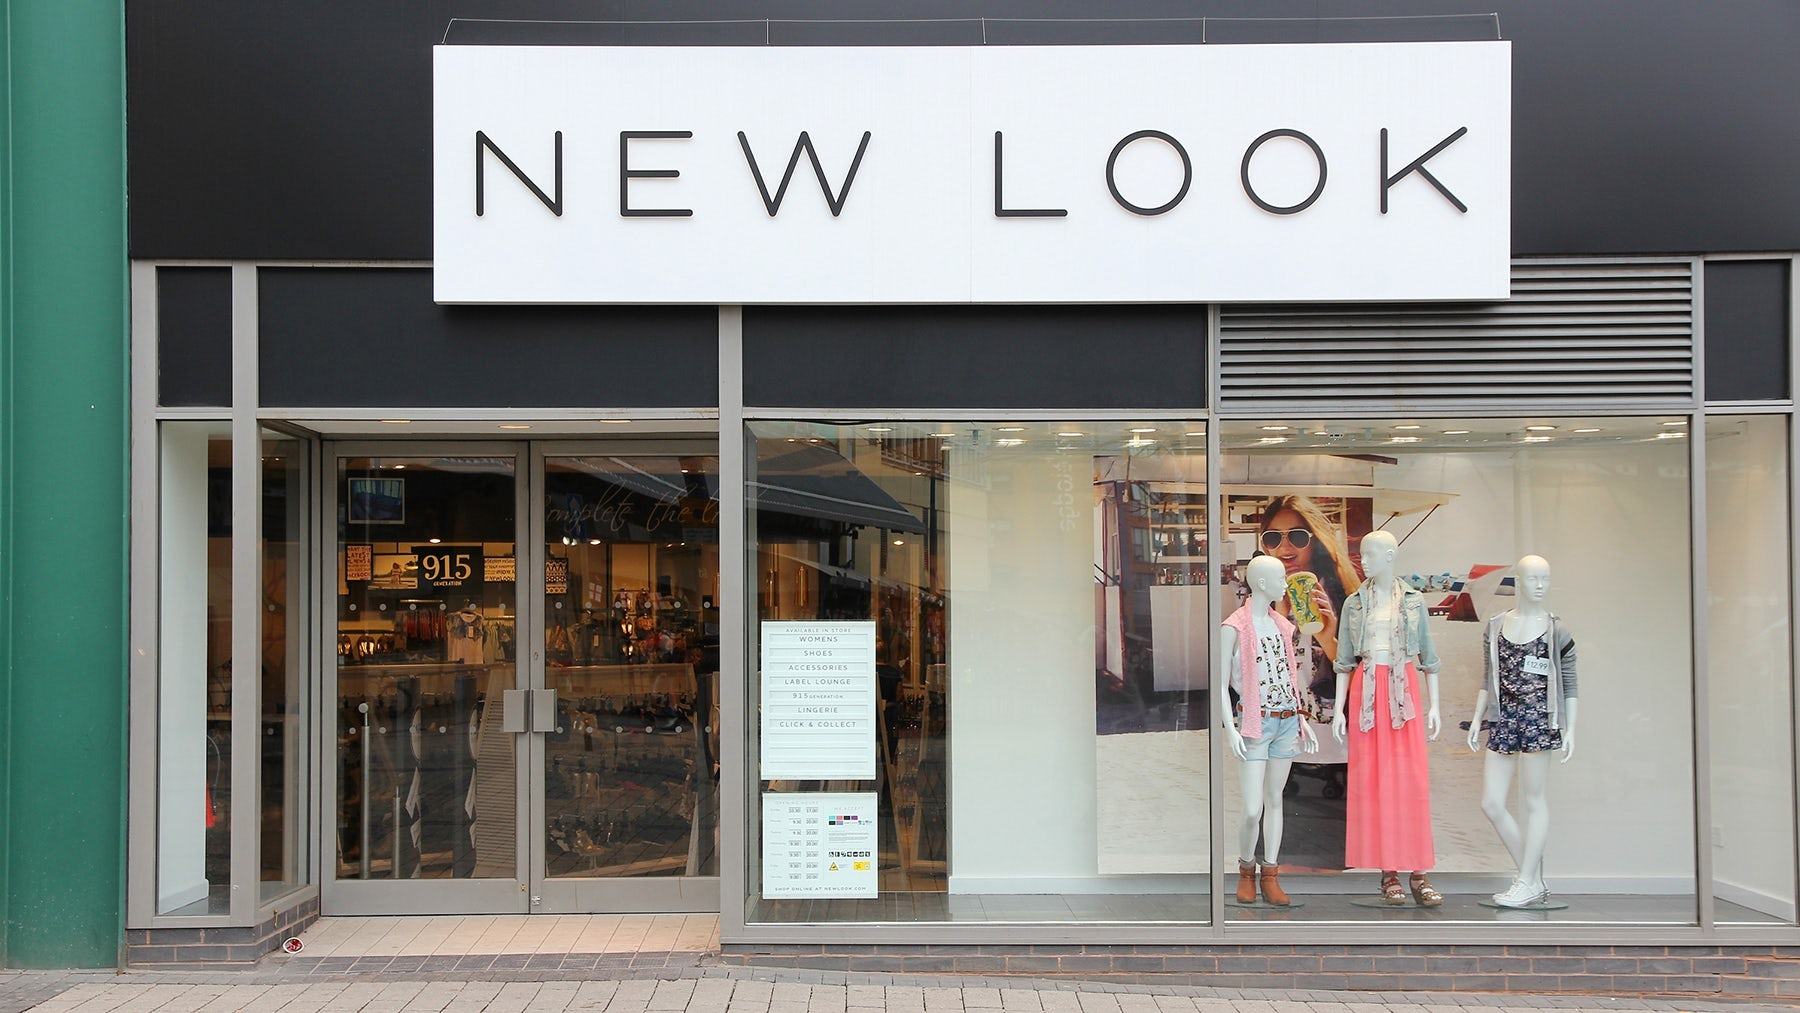 New Look store | Source: Shutterstock